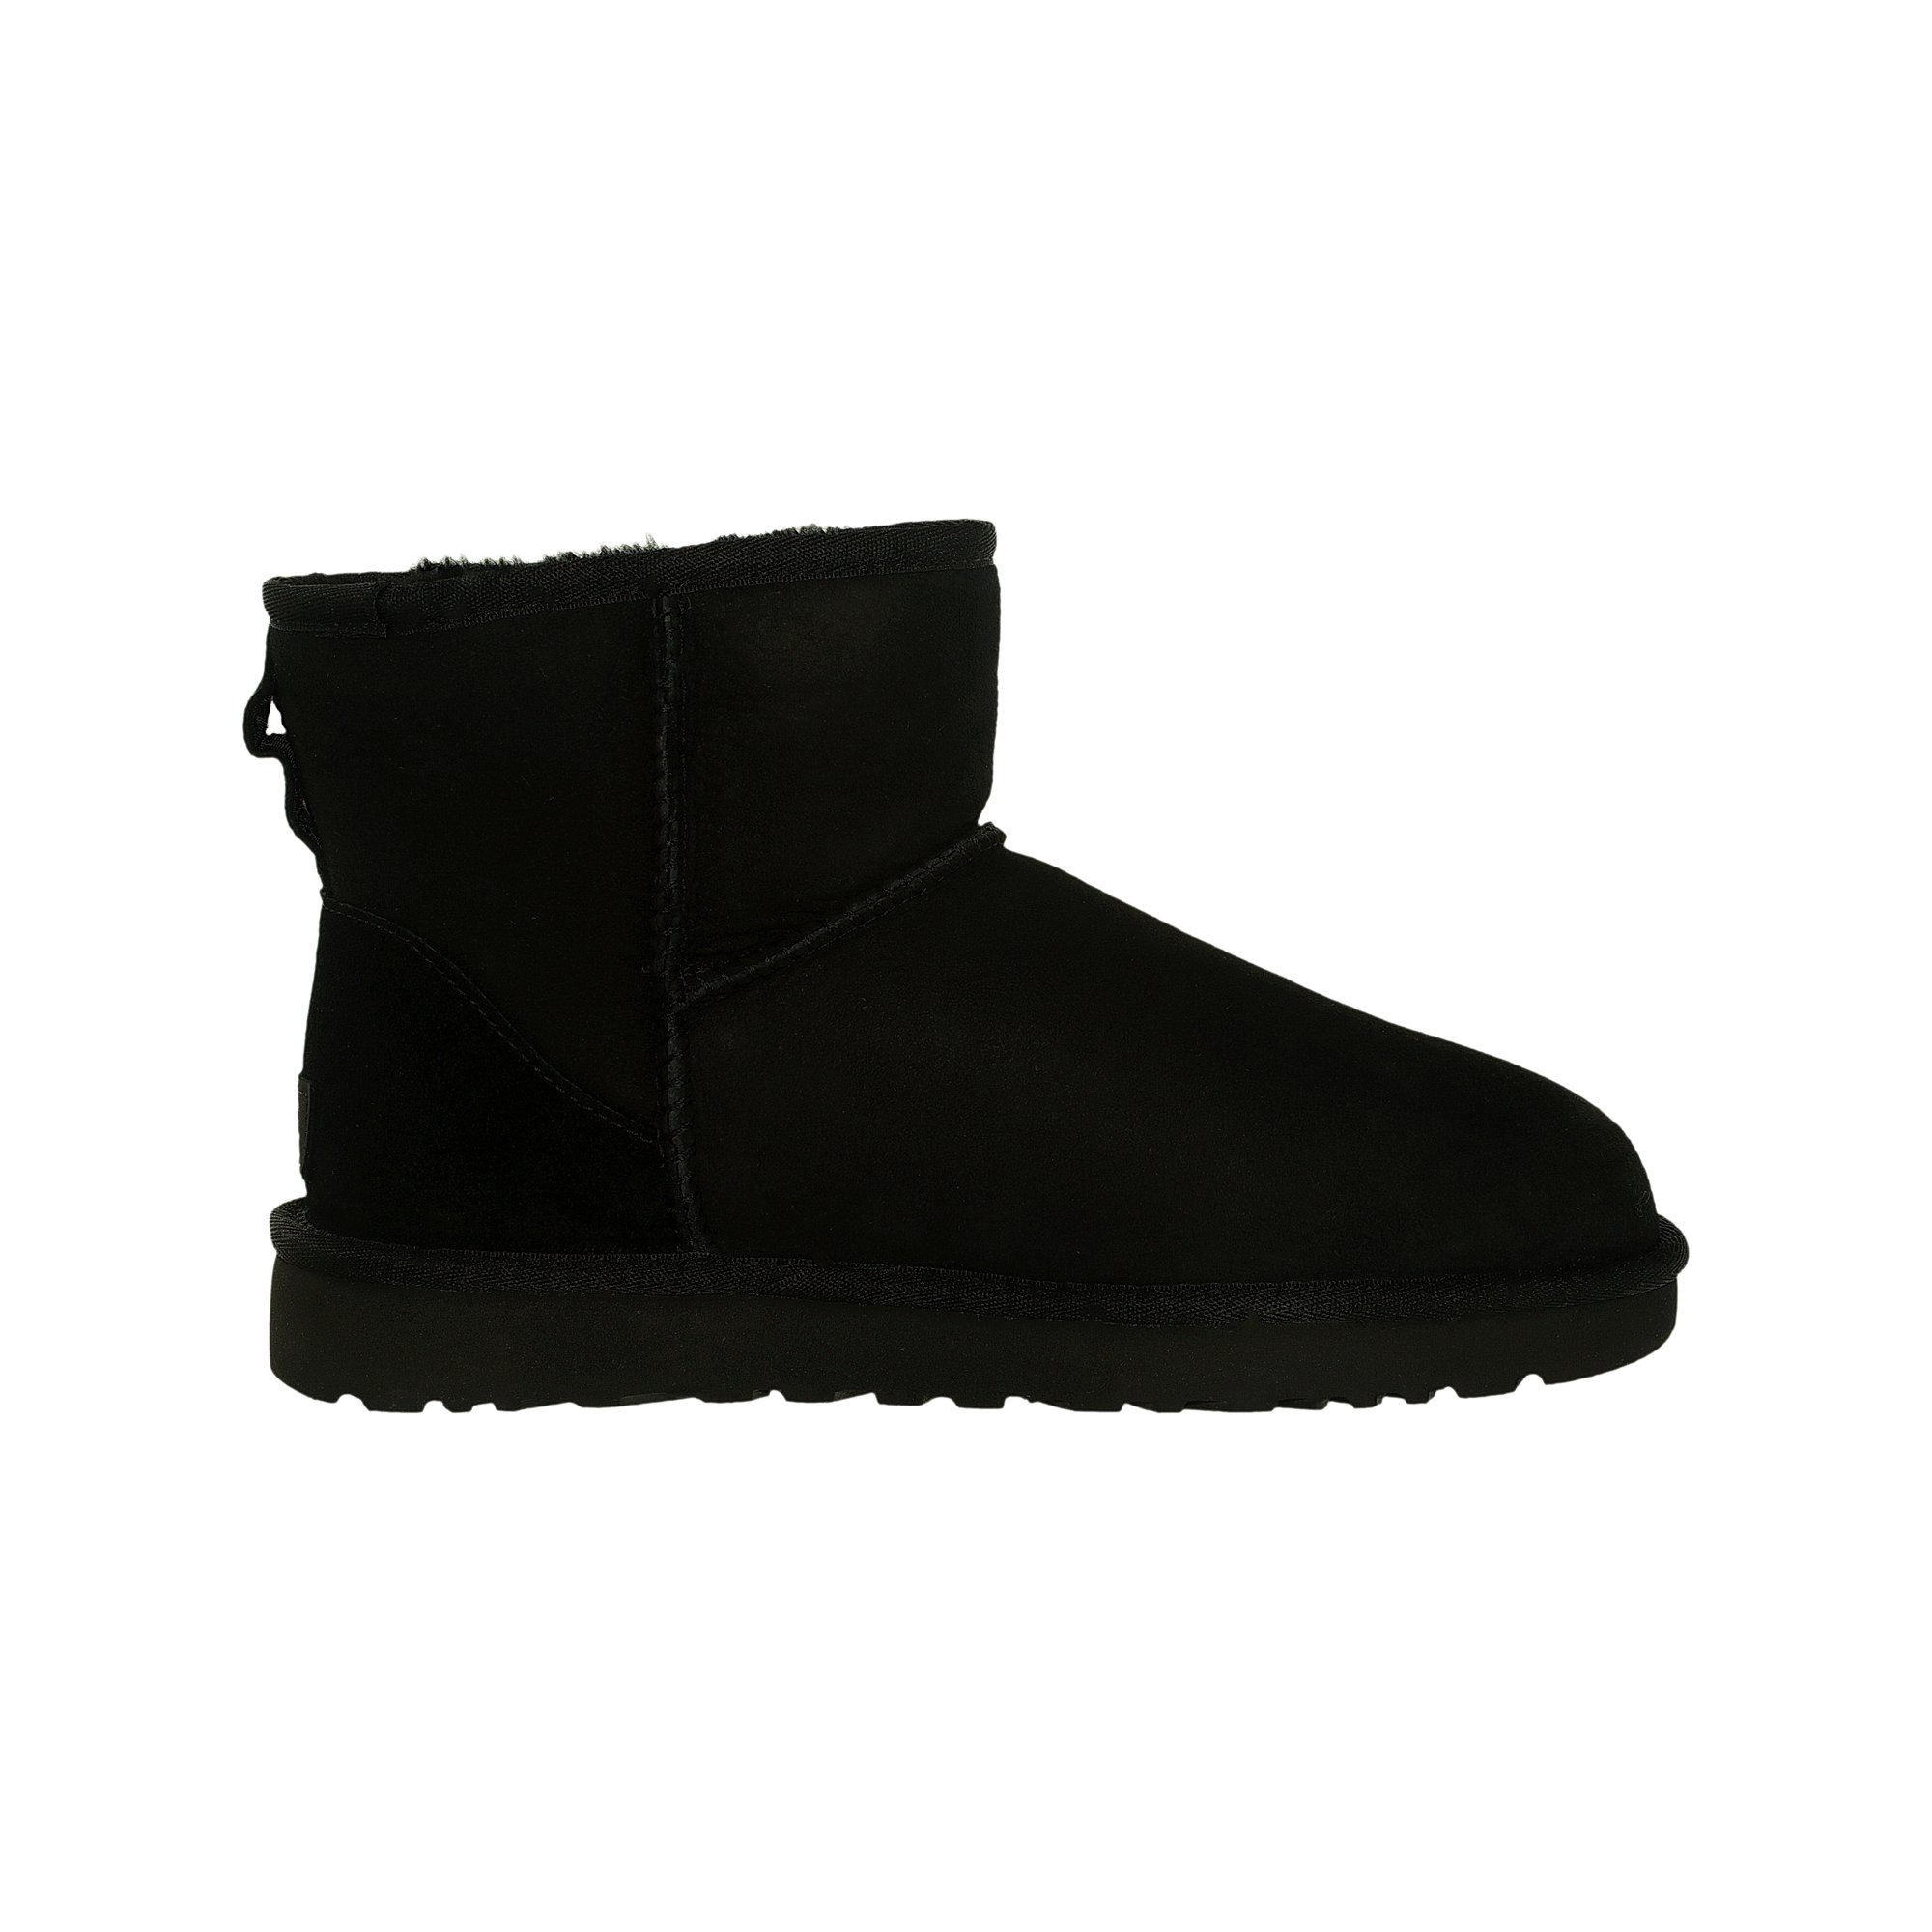 b8bcab10d61 Ugg Women's Classic Mini II Leather Black Ankle-High Suede Boot - 6M